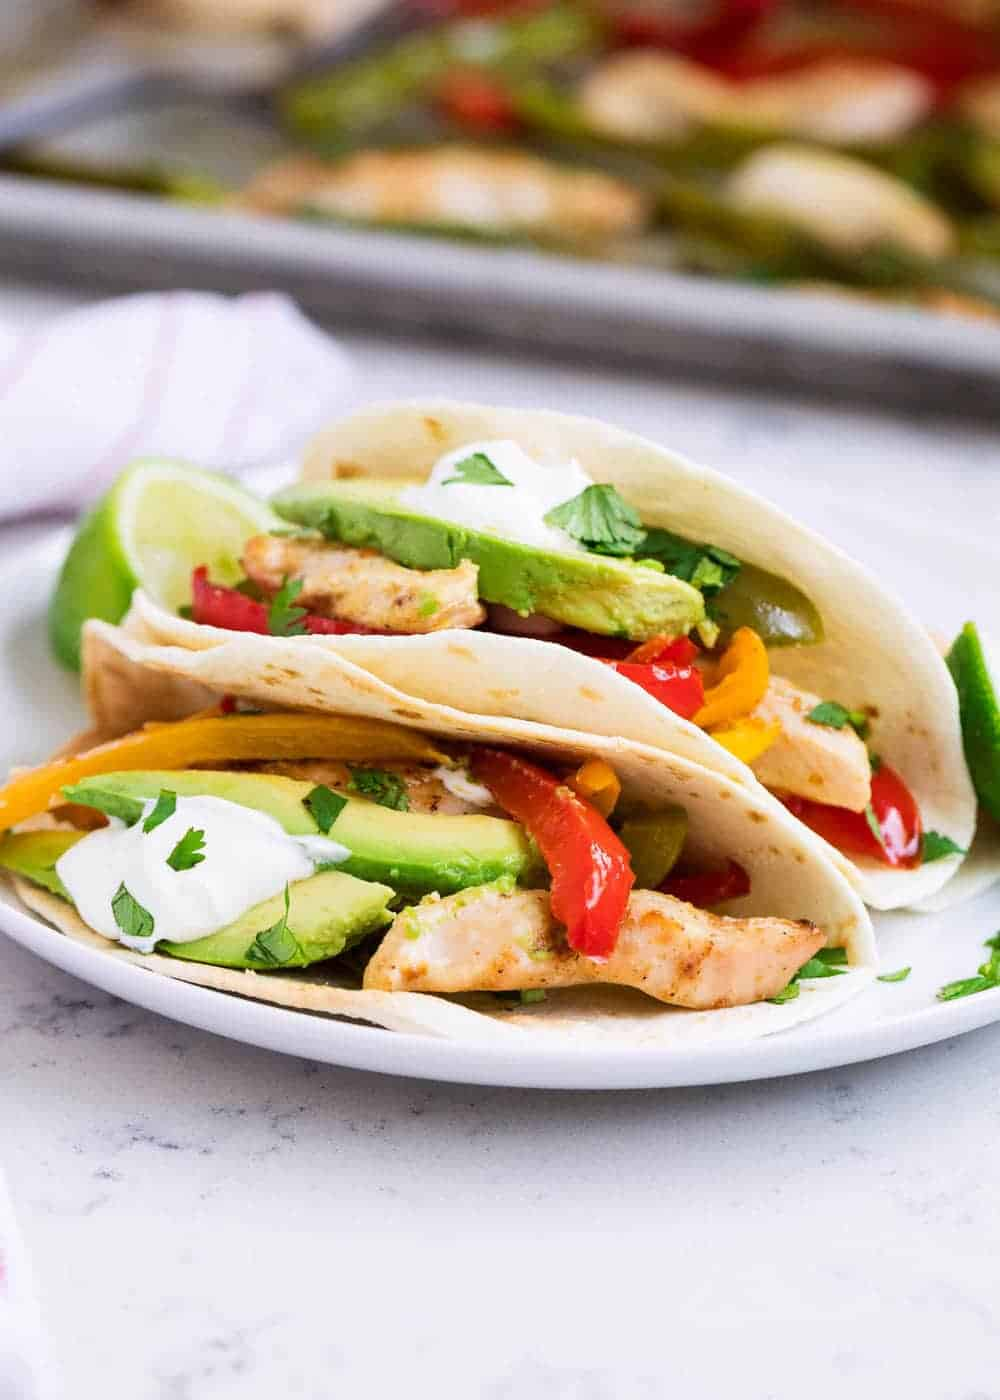 plate of chicken fajitas in tortillas